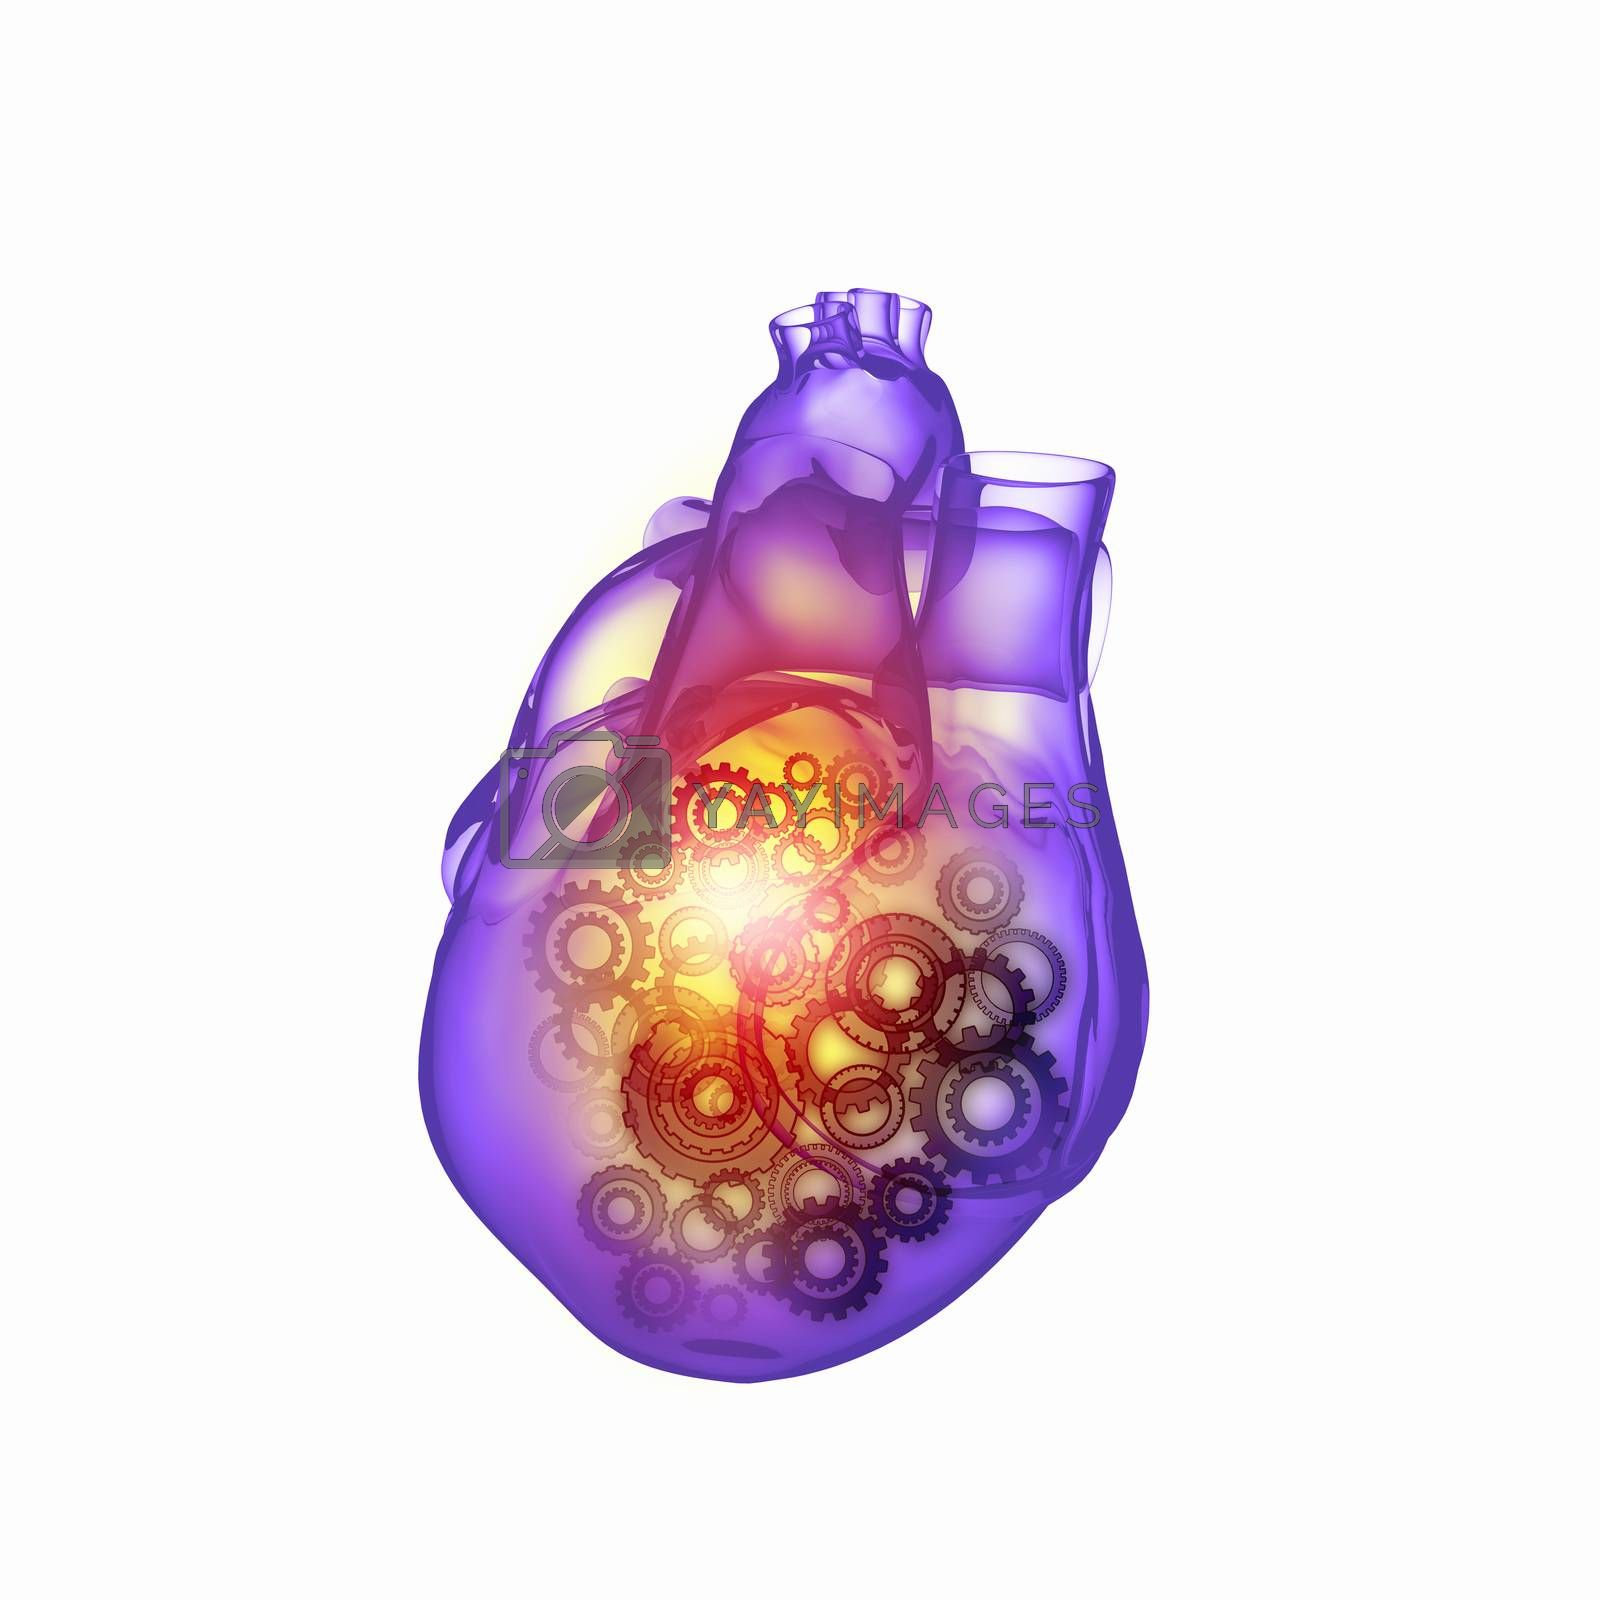 Human heart by Sergey Nivens